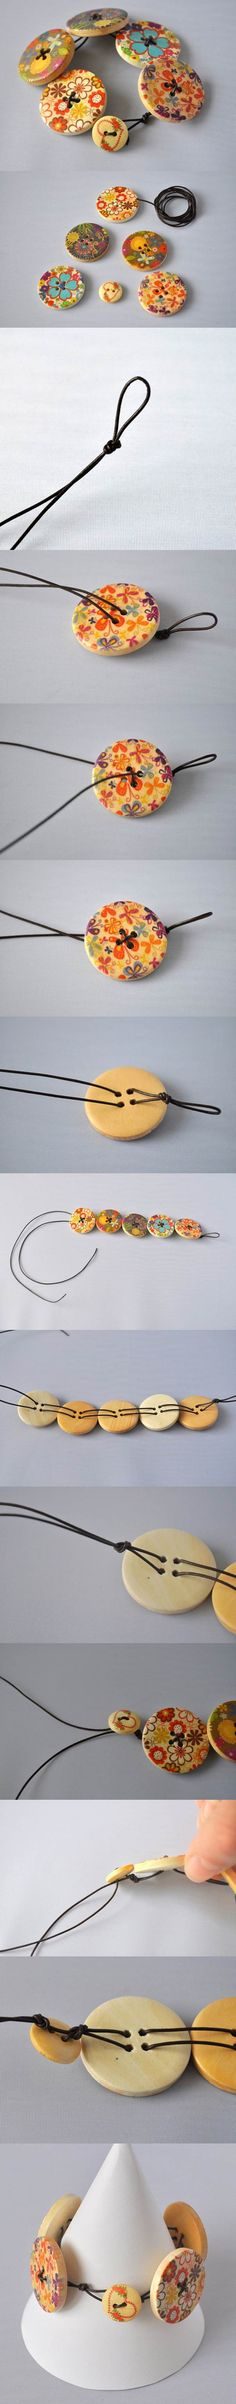 DIY Fashionable Button Bracelet 2